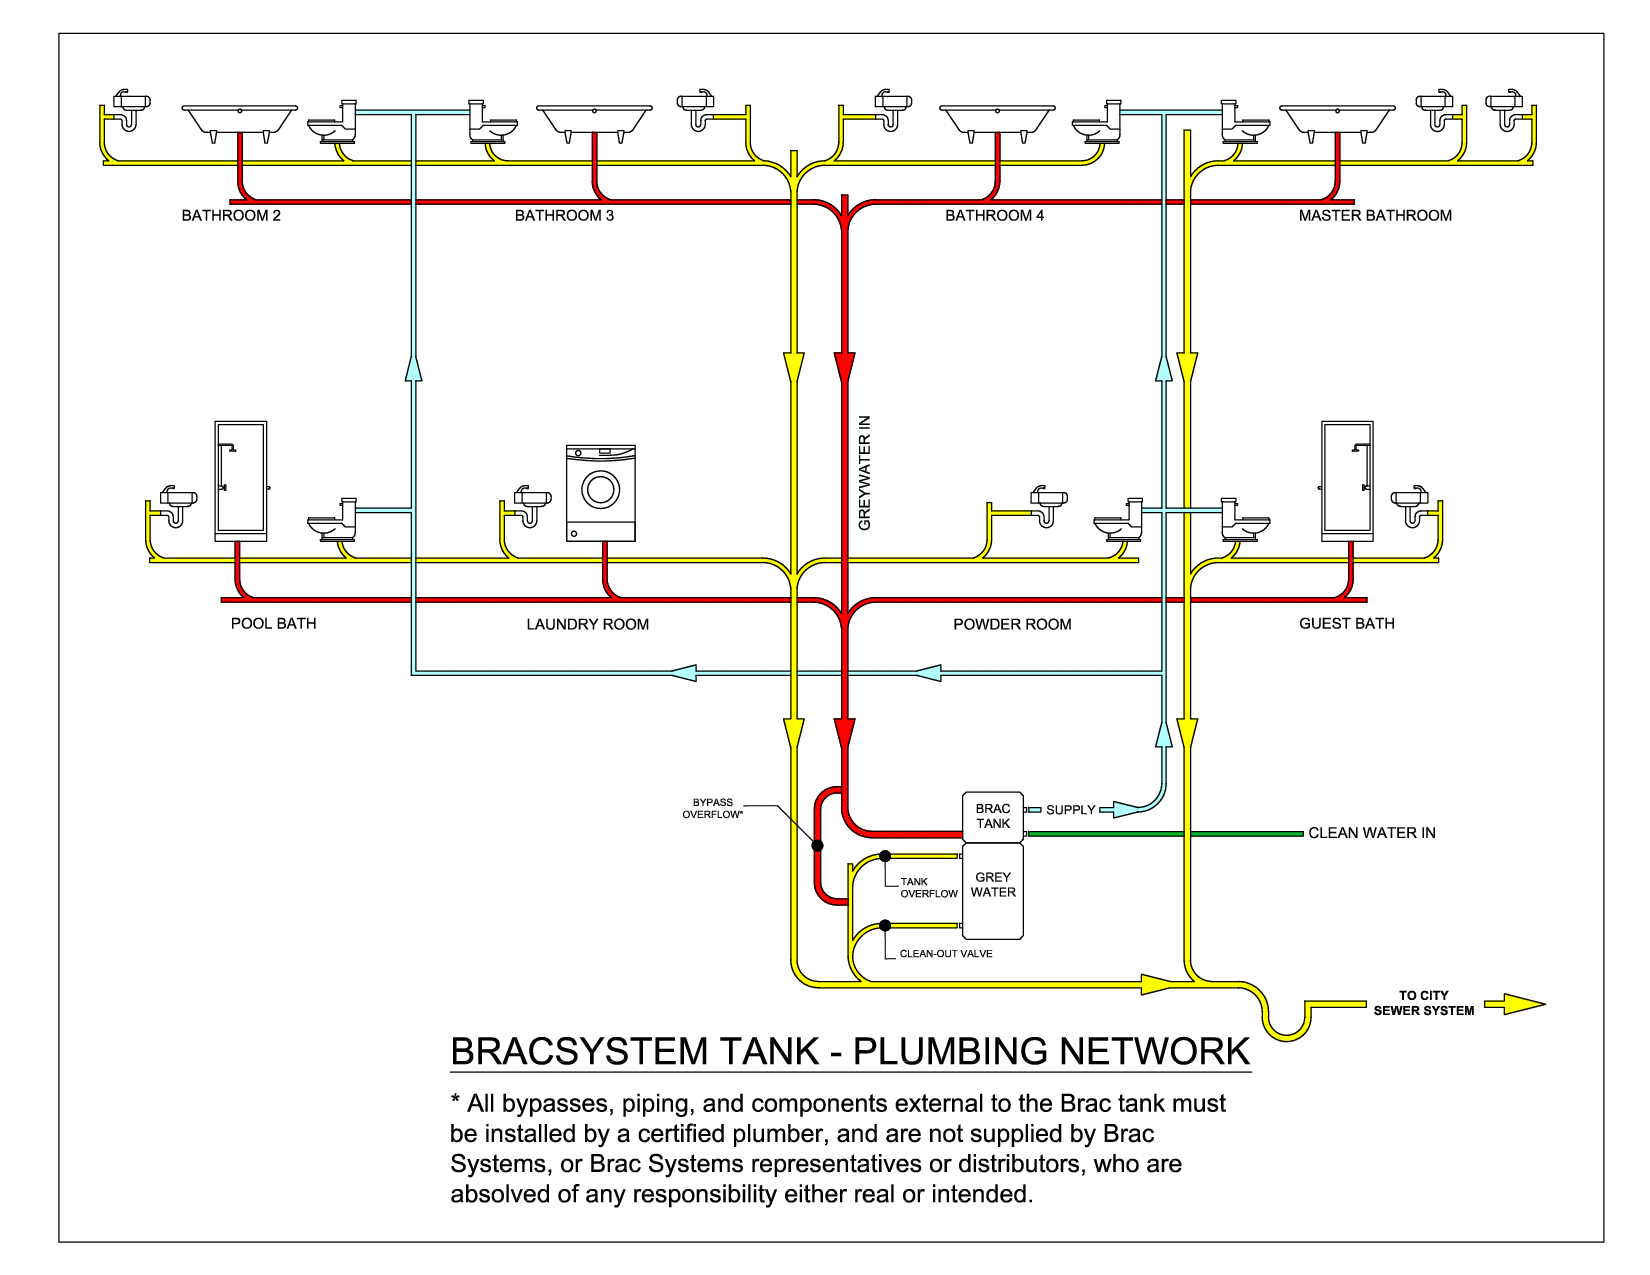 6a10db7de24186000f000aa7eded67b2 mobile home plumbing systems plumbing network diagram pdf  at bayanpartner.co